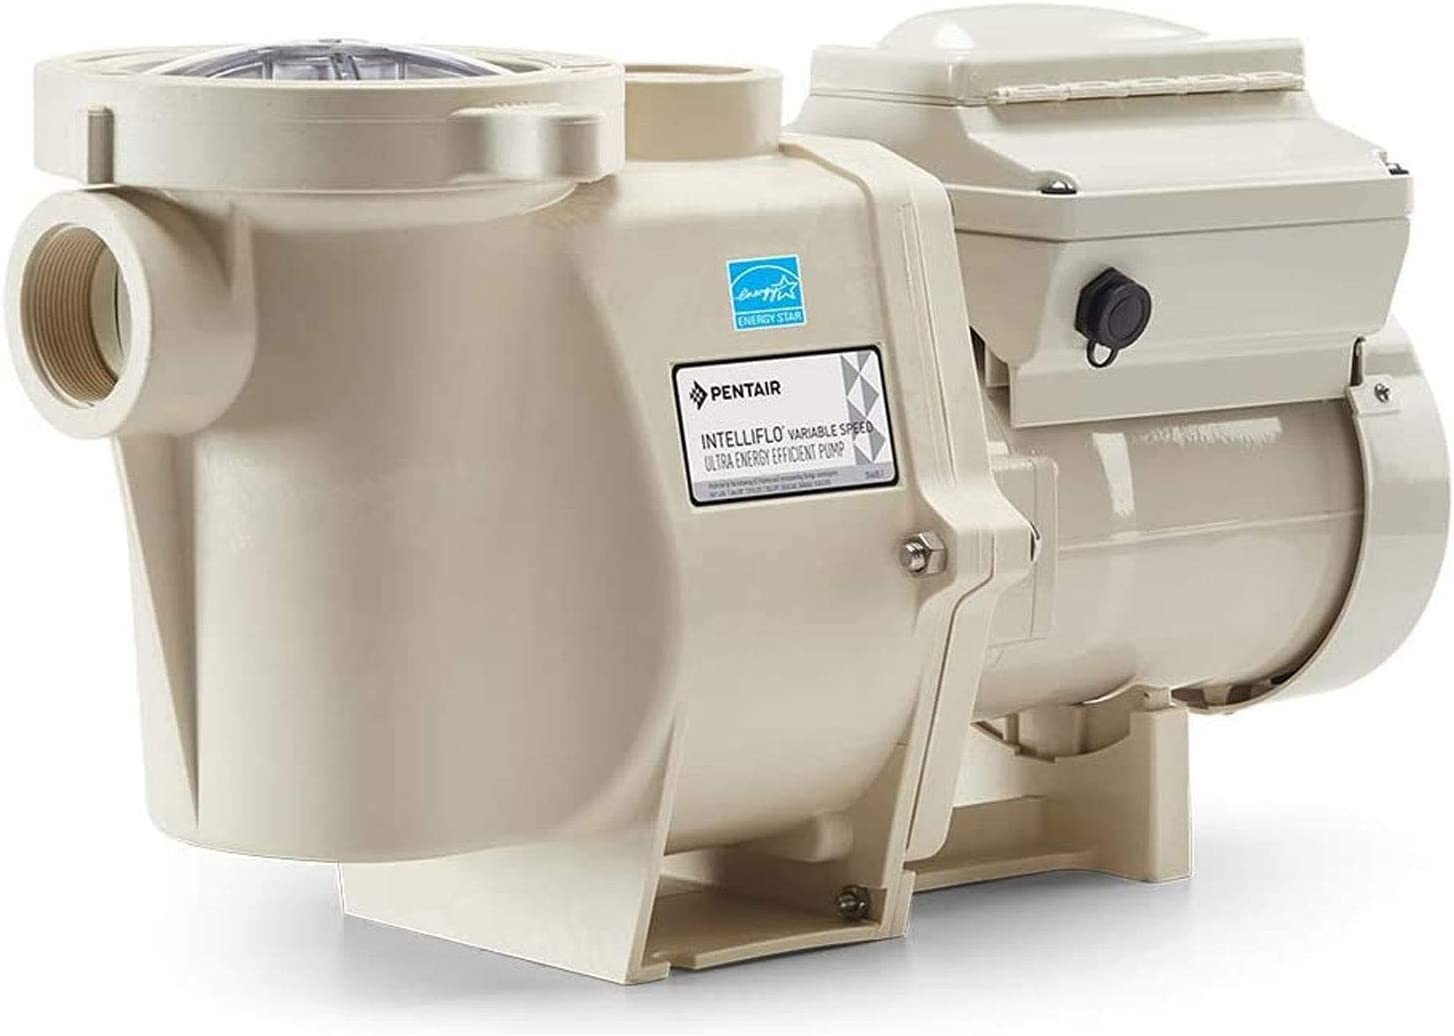 Pentair 011057 IntelliFlo VS SVRS Variable Speed 3HP Energy Efficient Quiet In Ground Swimming Pool Pump With Built In Safety Vacuum Release System